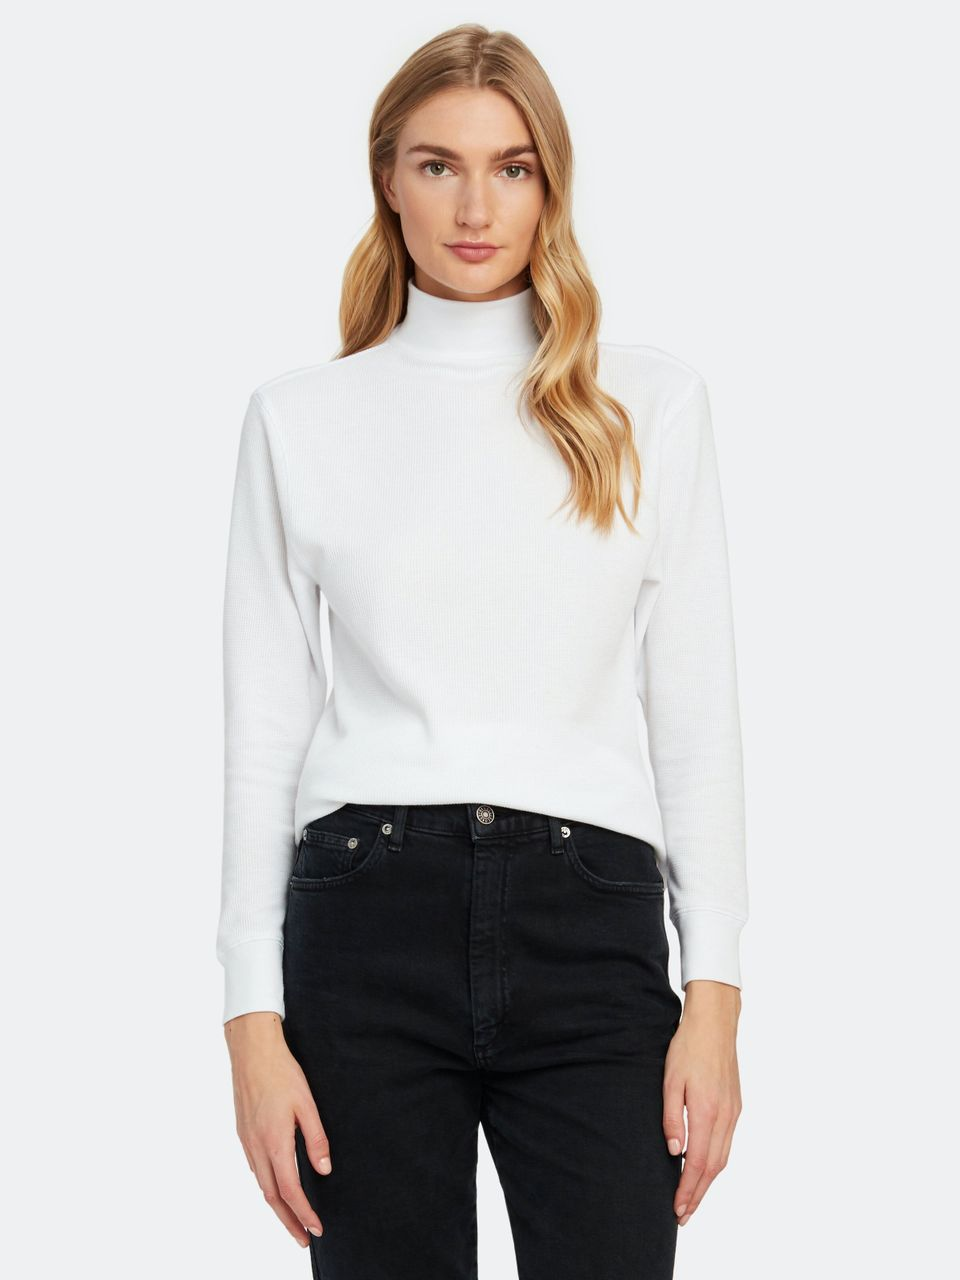 If You're A Nordstrom Fan, You Should Check Out This Verishop Sale 14